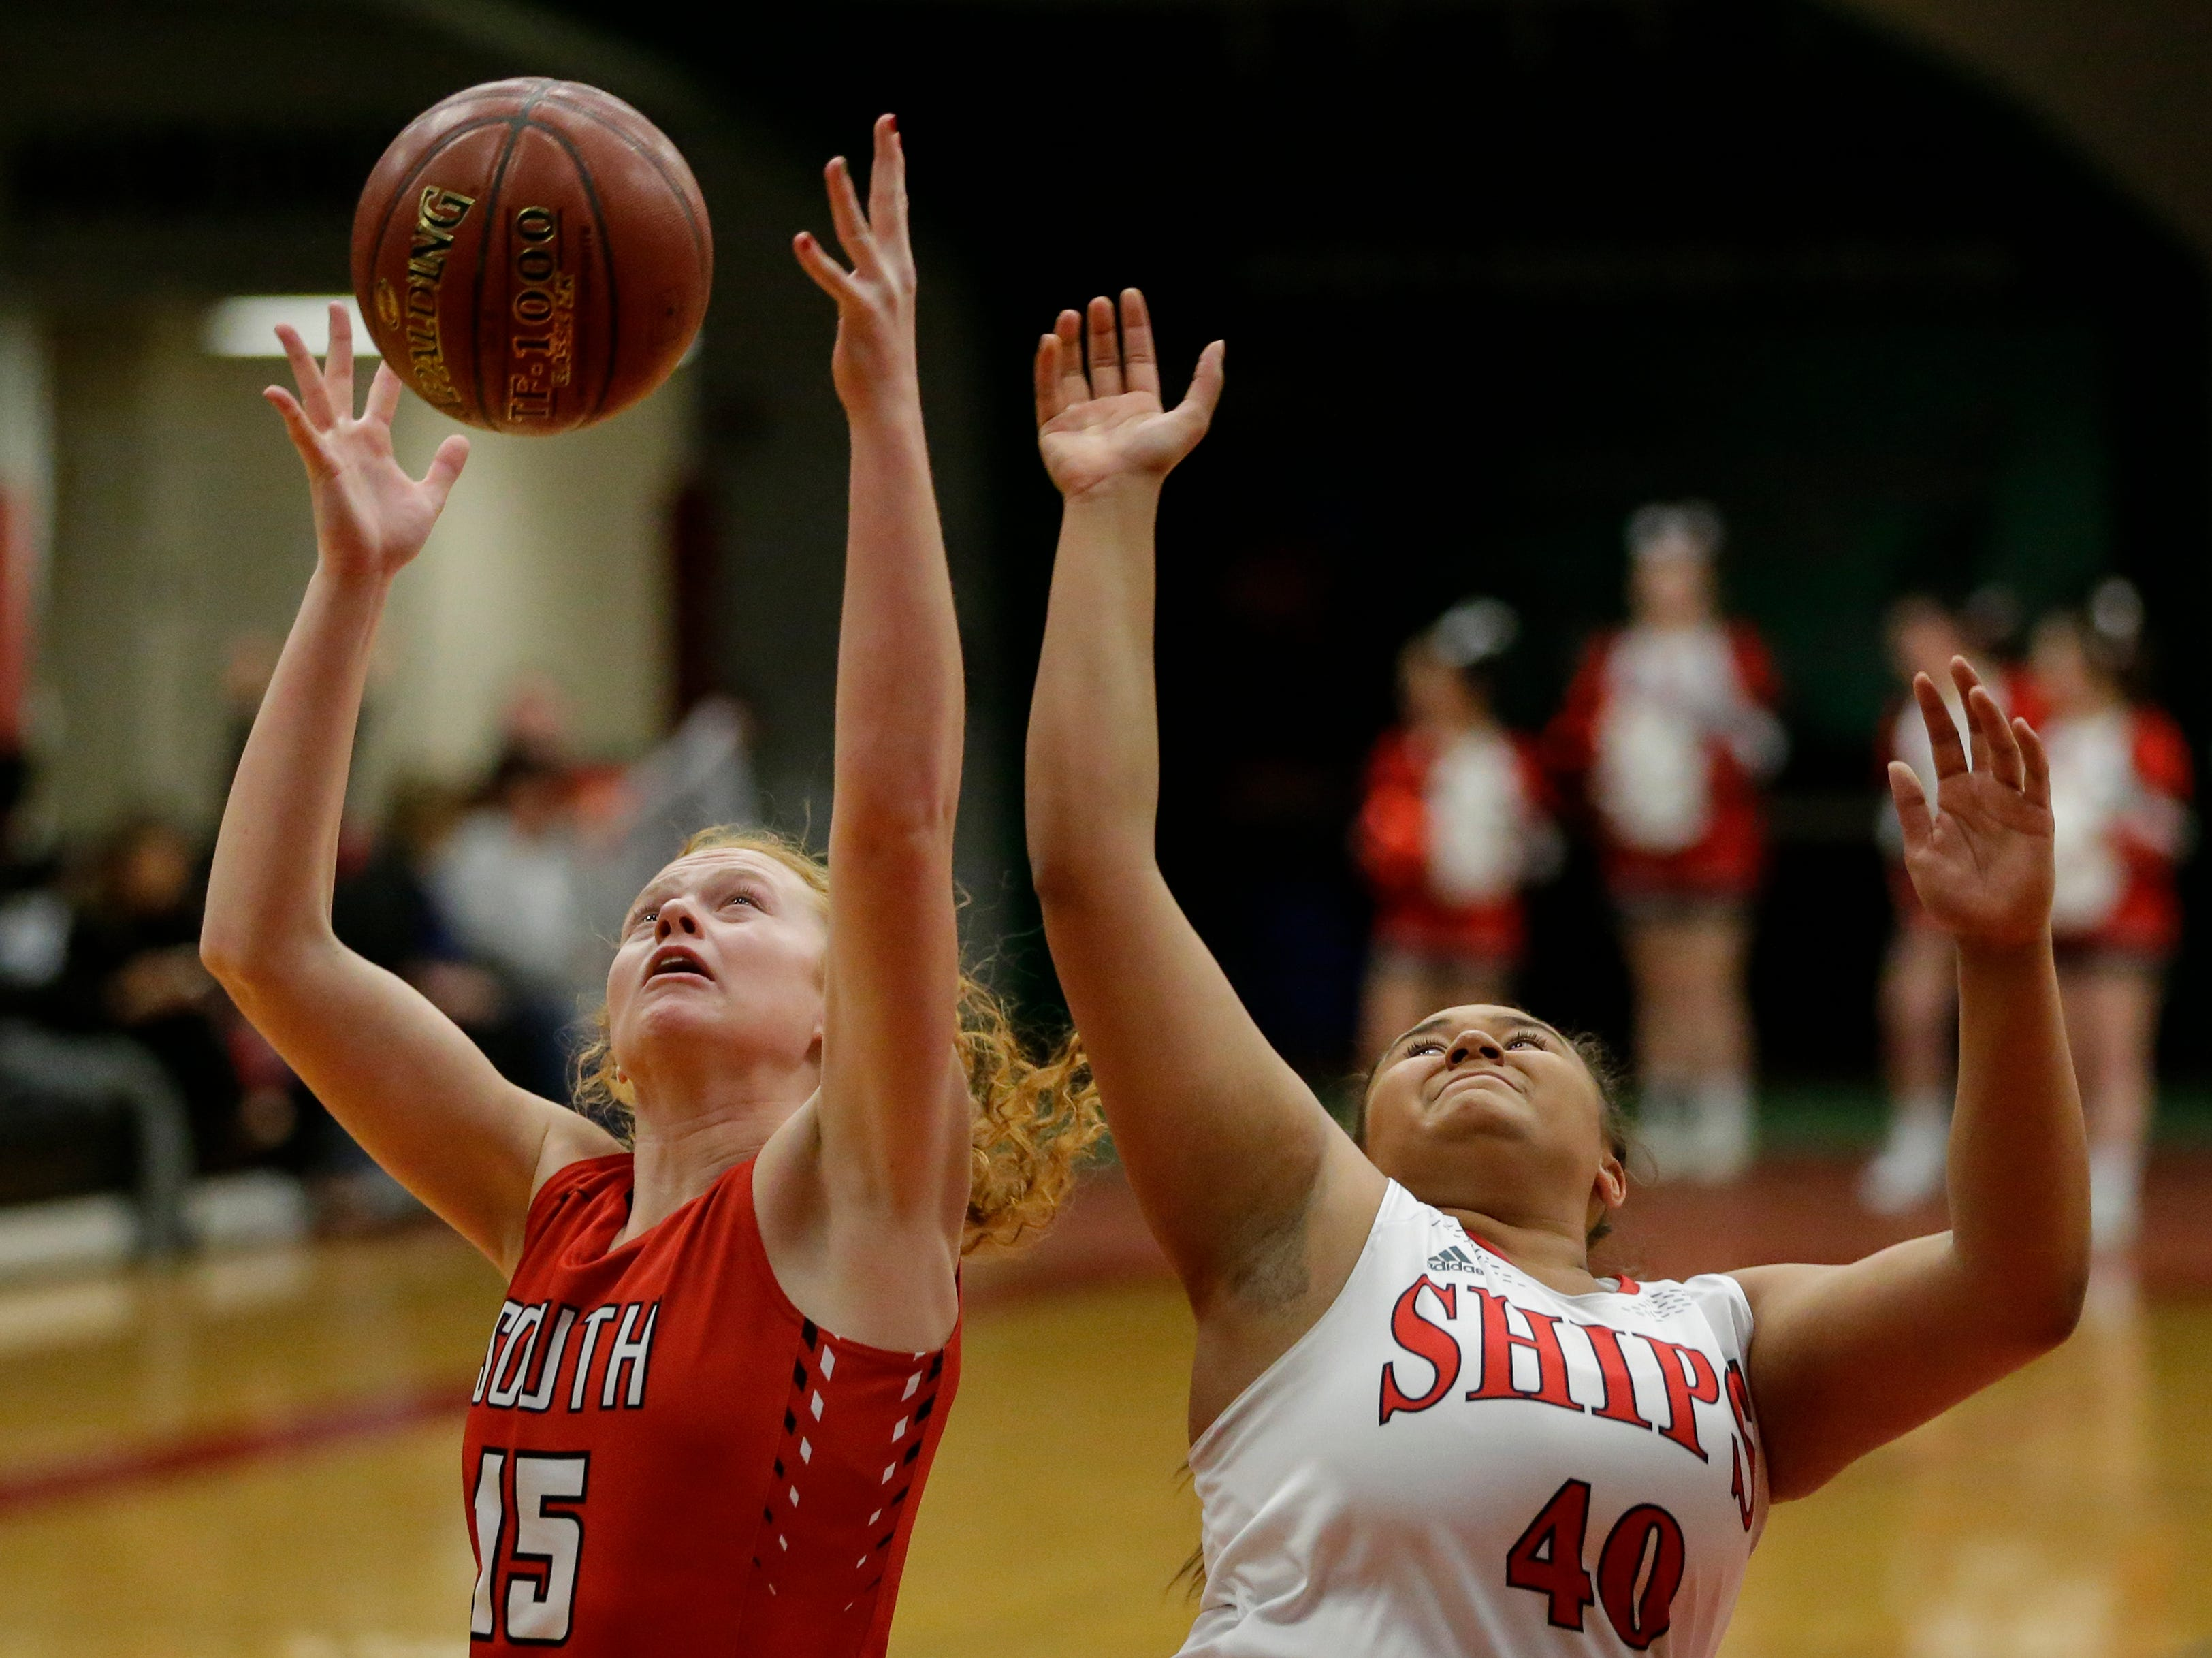 Sheboygan South's Lindsey Horen rebounds over Manitowoc Lincoln's Massendra Musial during an FRCC matchup at Manitowoc Lincoln High School Friday, January 4, 2019, in Manitowoc, Wis. Joshua Clark/USA TODAY NETWORK-Wisconsin